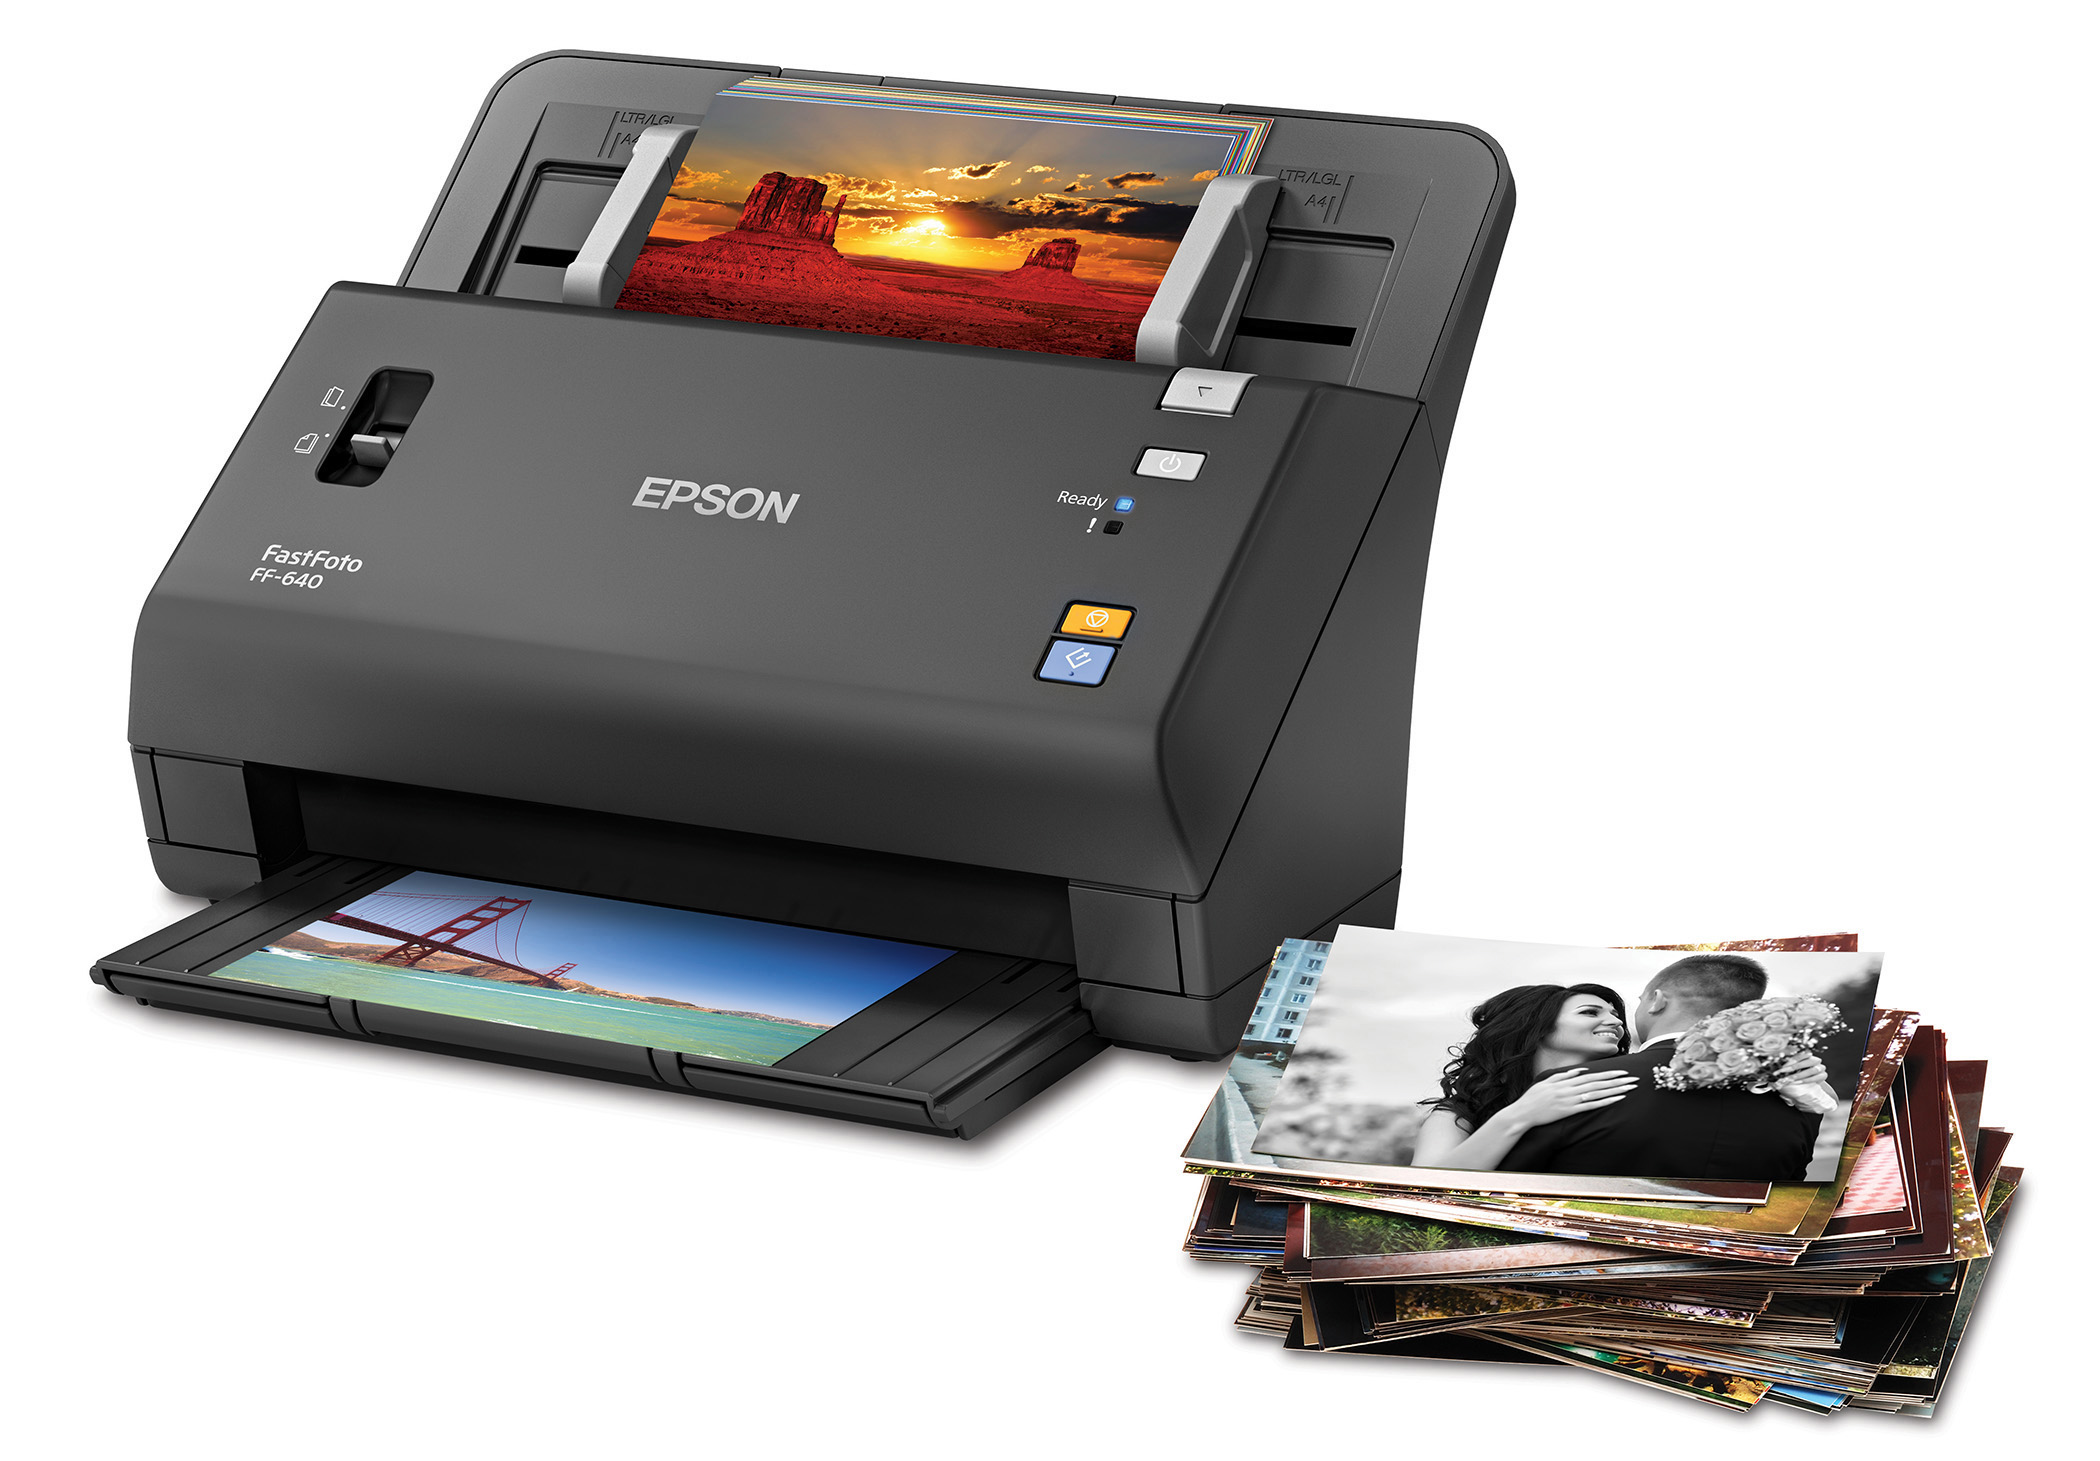 scansnap ebuyer scanners with feeder photo multiple document scanner photos colour for fujitsu duplex